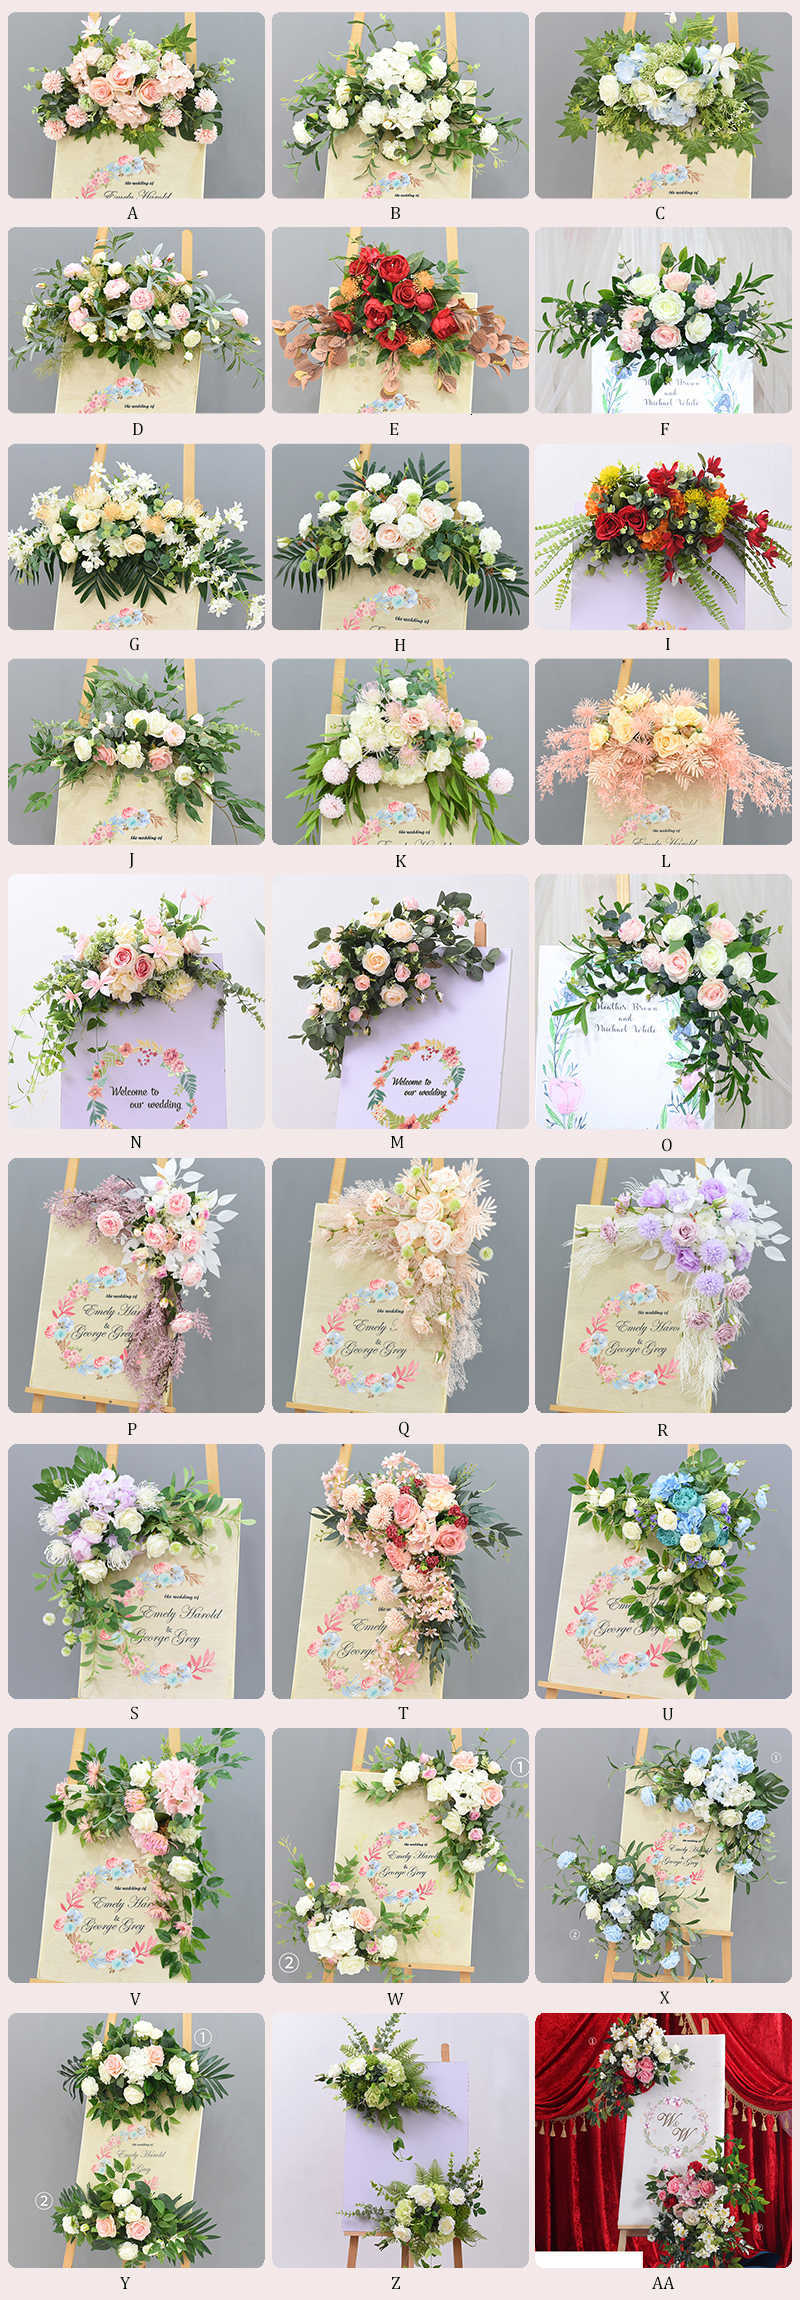 JAROWN Wedding Flower Row Welcome Sign Simulation Floral Hotel Creative Guide Decorations Photography Props Home Door Flower (28)